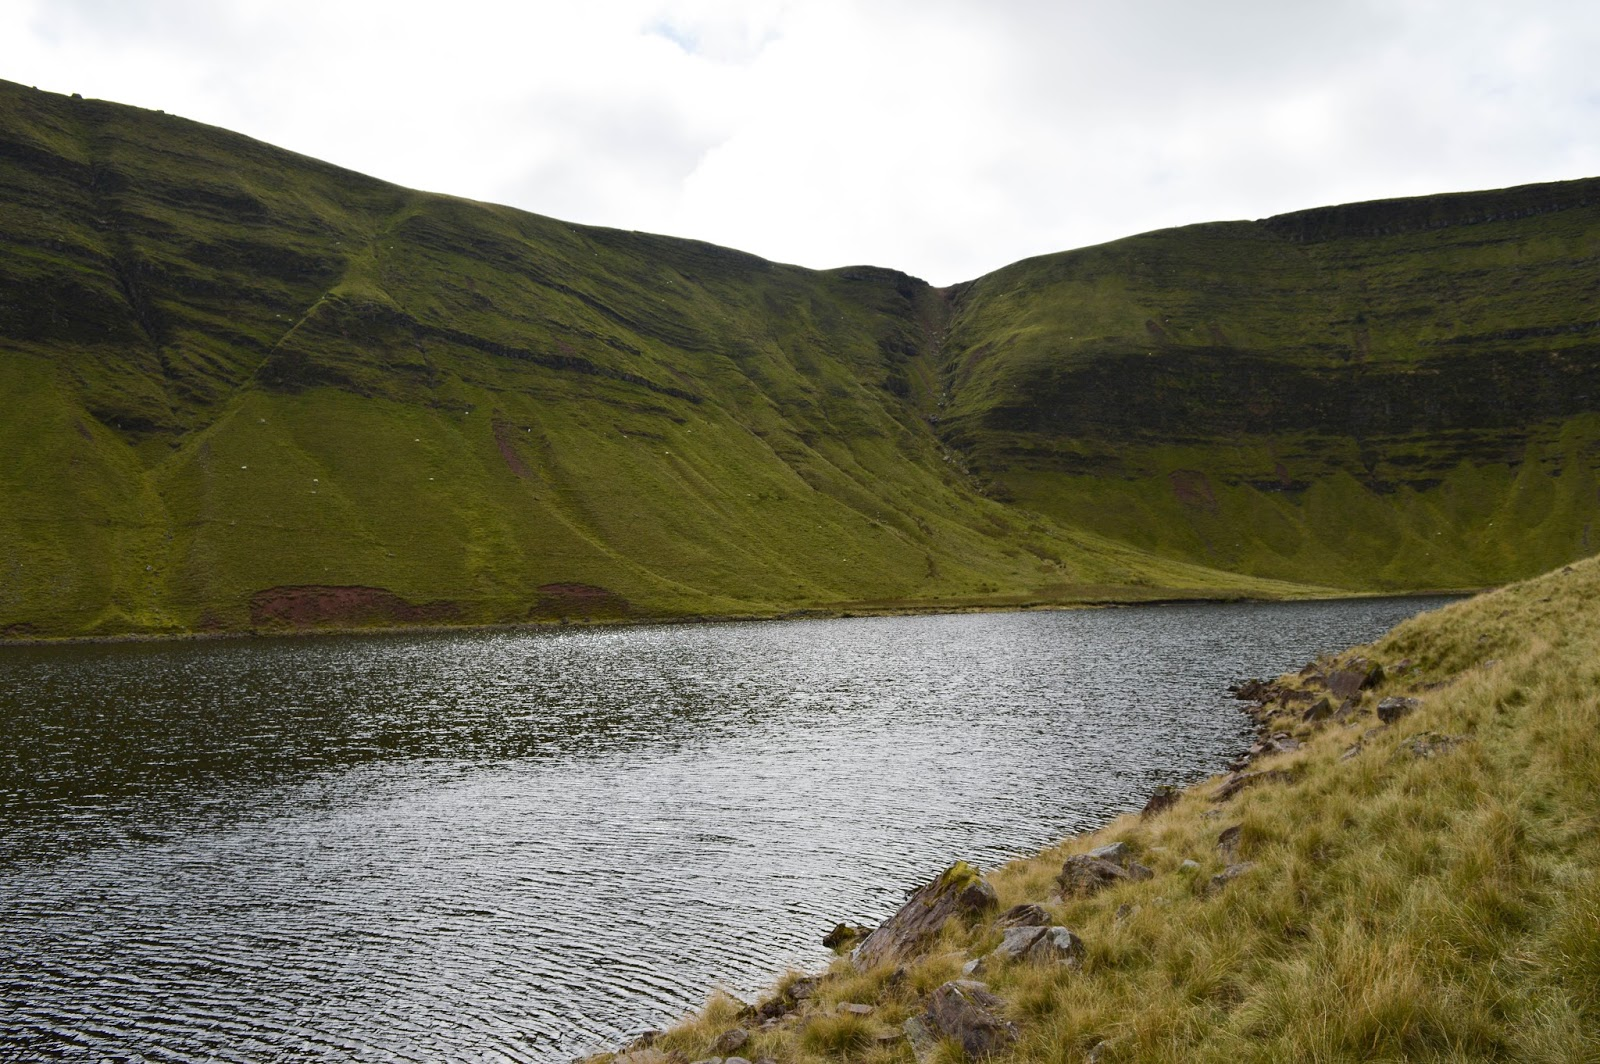 travel blog, UK travel blog, llyn y fan fach, lifestyle blog